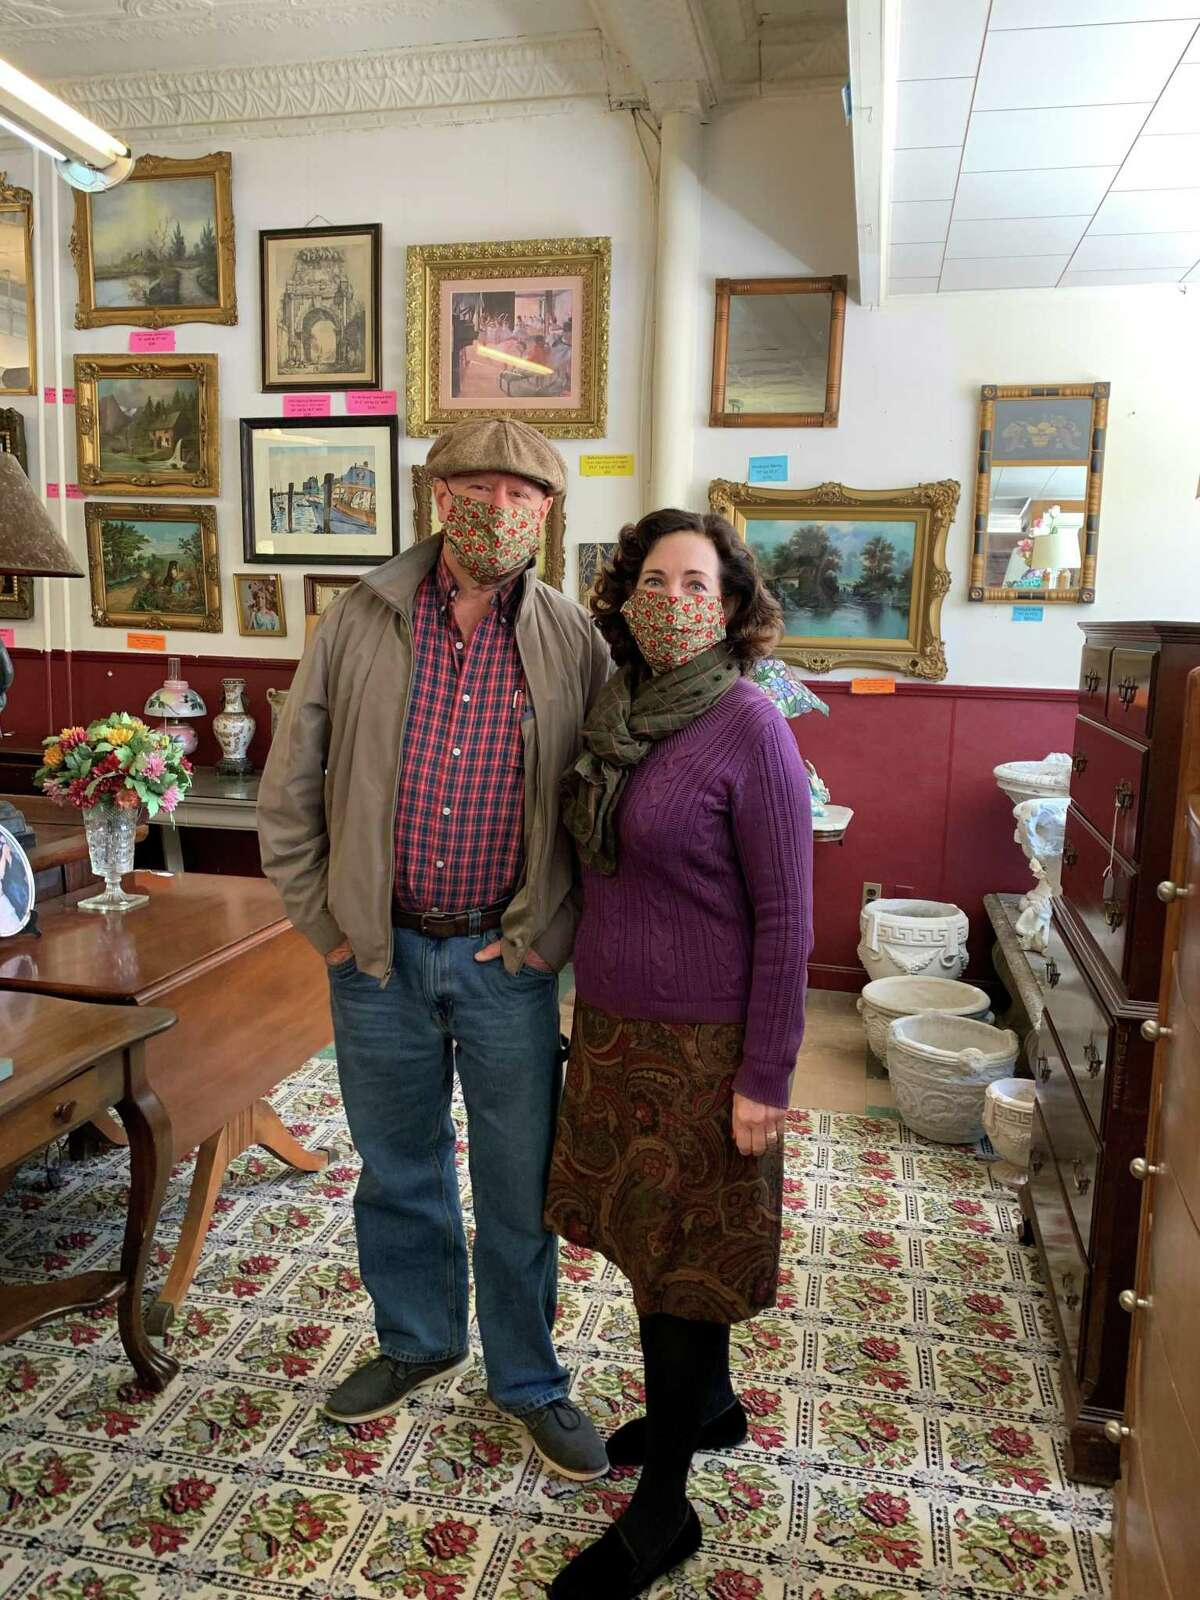 Villa's Corner Gallery reopened Sept. 18. The shop on Route 44 in Winsted offers a wide variety of collectibles, furniture, wall art, jewelry, sculpture, lawn and garden ornaments and other treasures. Above, Deb and Lynn Kessler of Winsted browse the store.